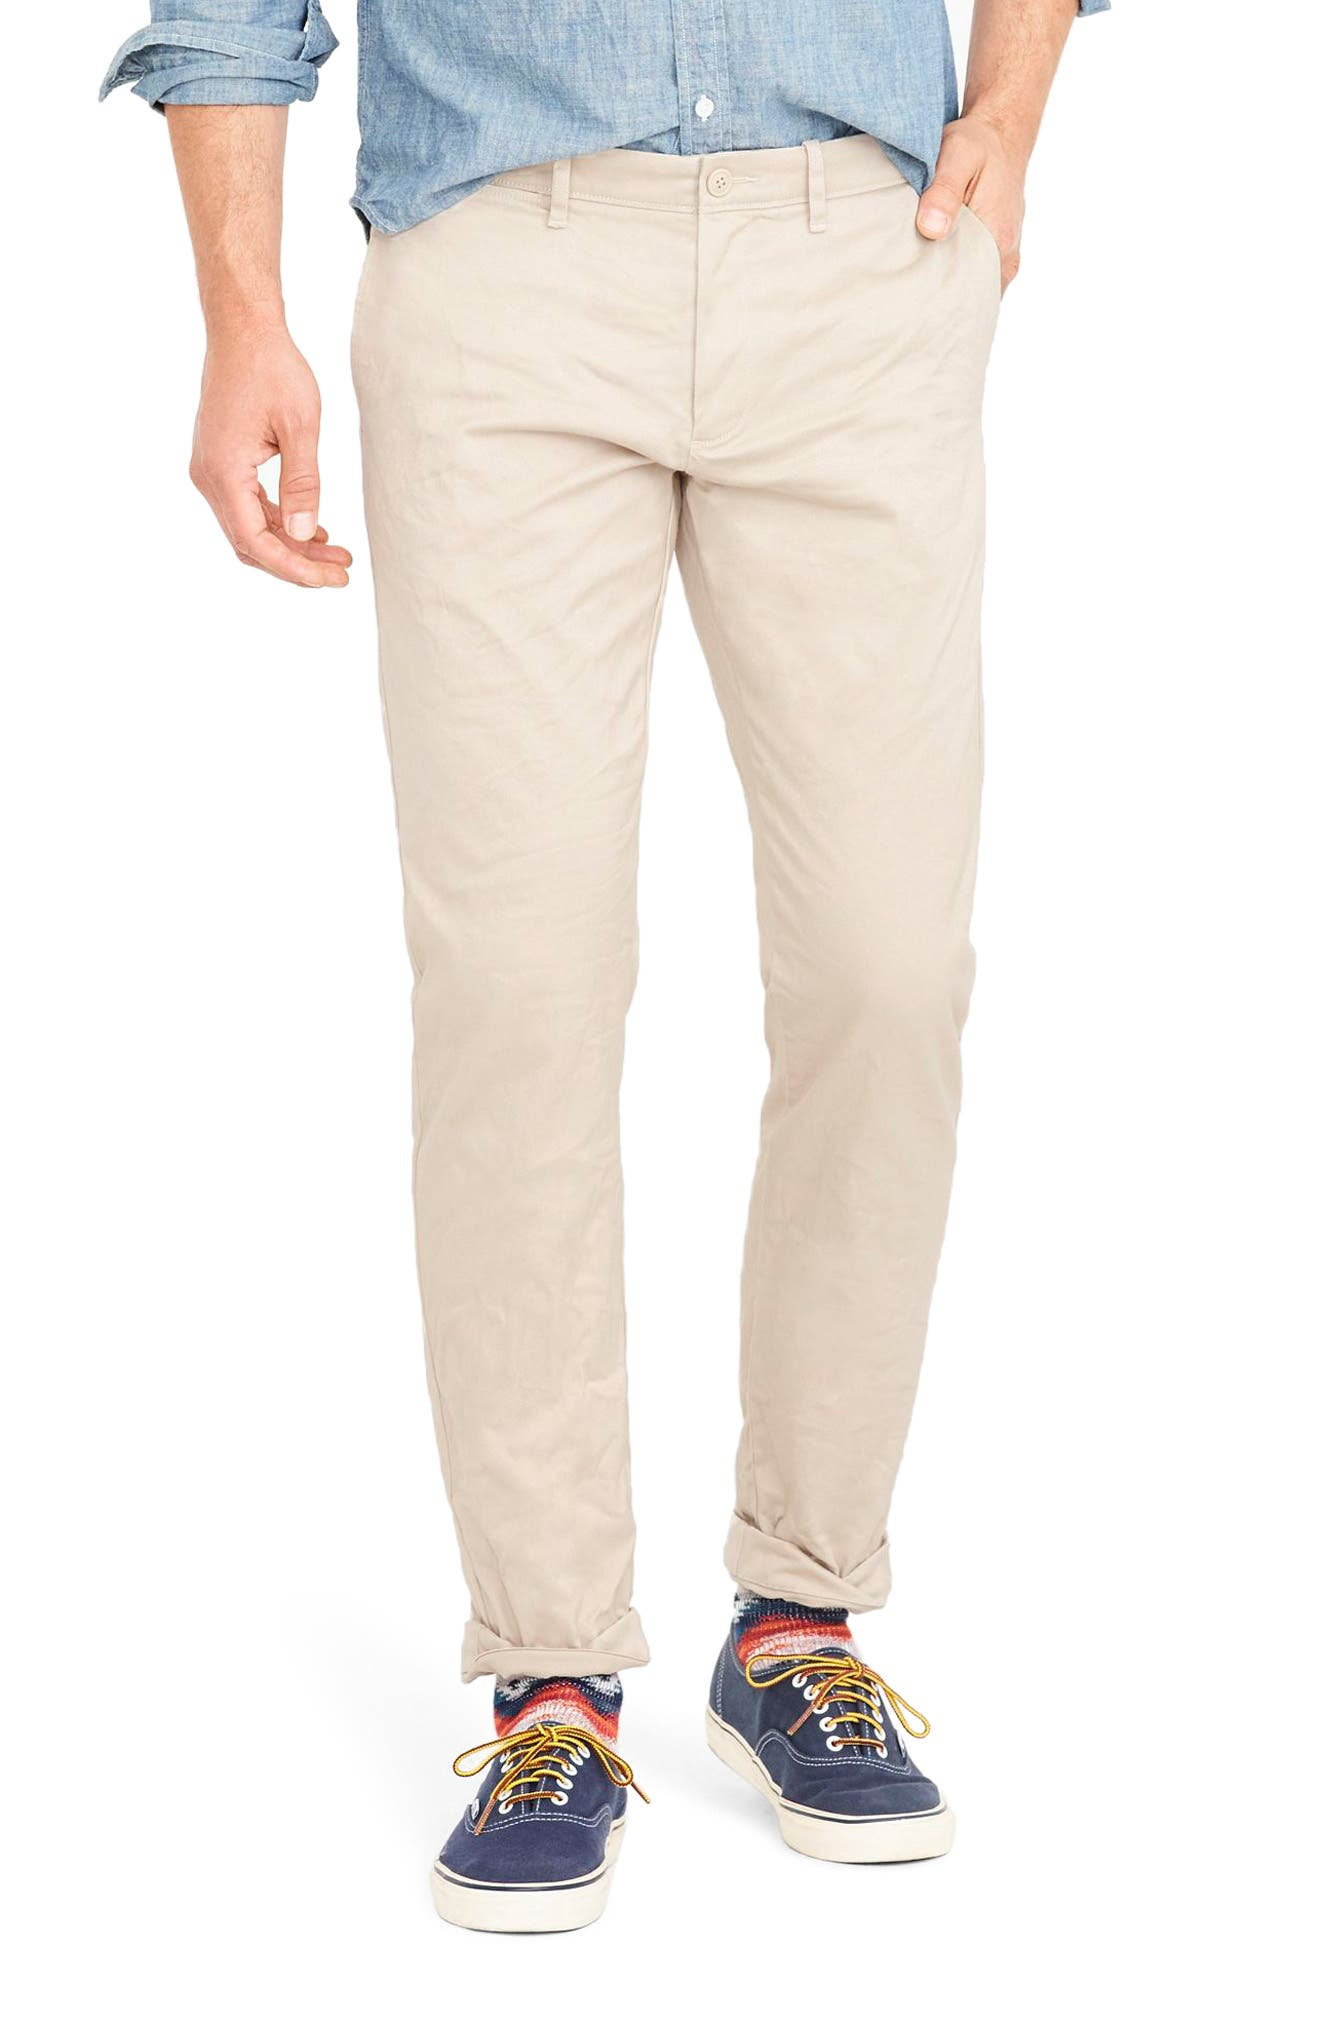 484 Slim Fit Stretch Chino Pants,                         Main,                         color, FADED CHINO